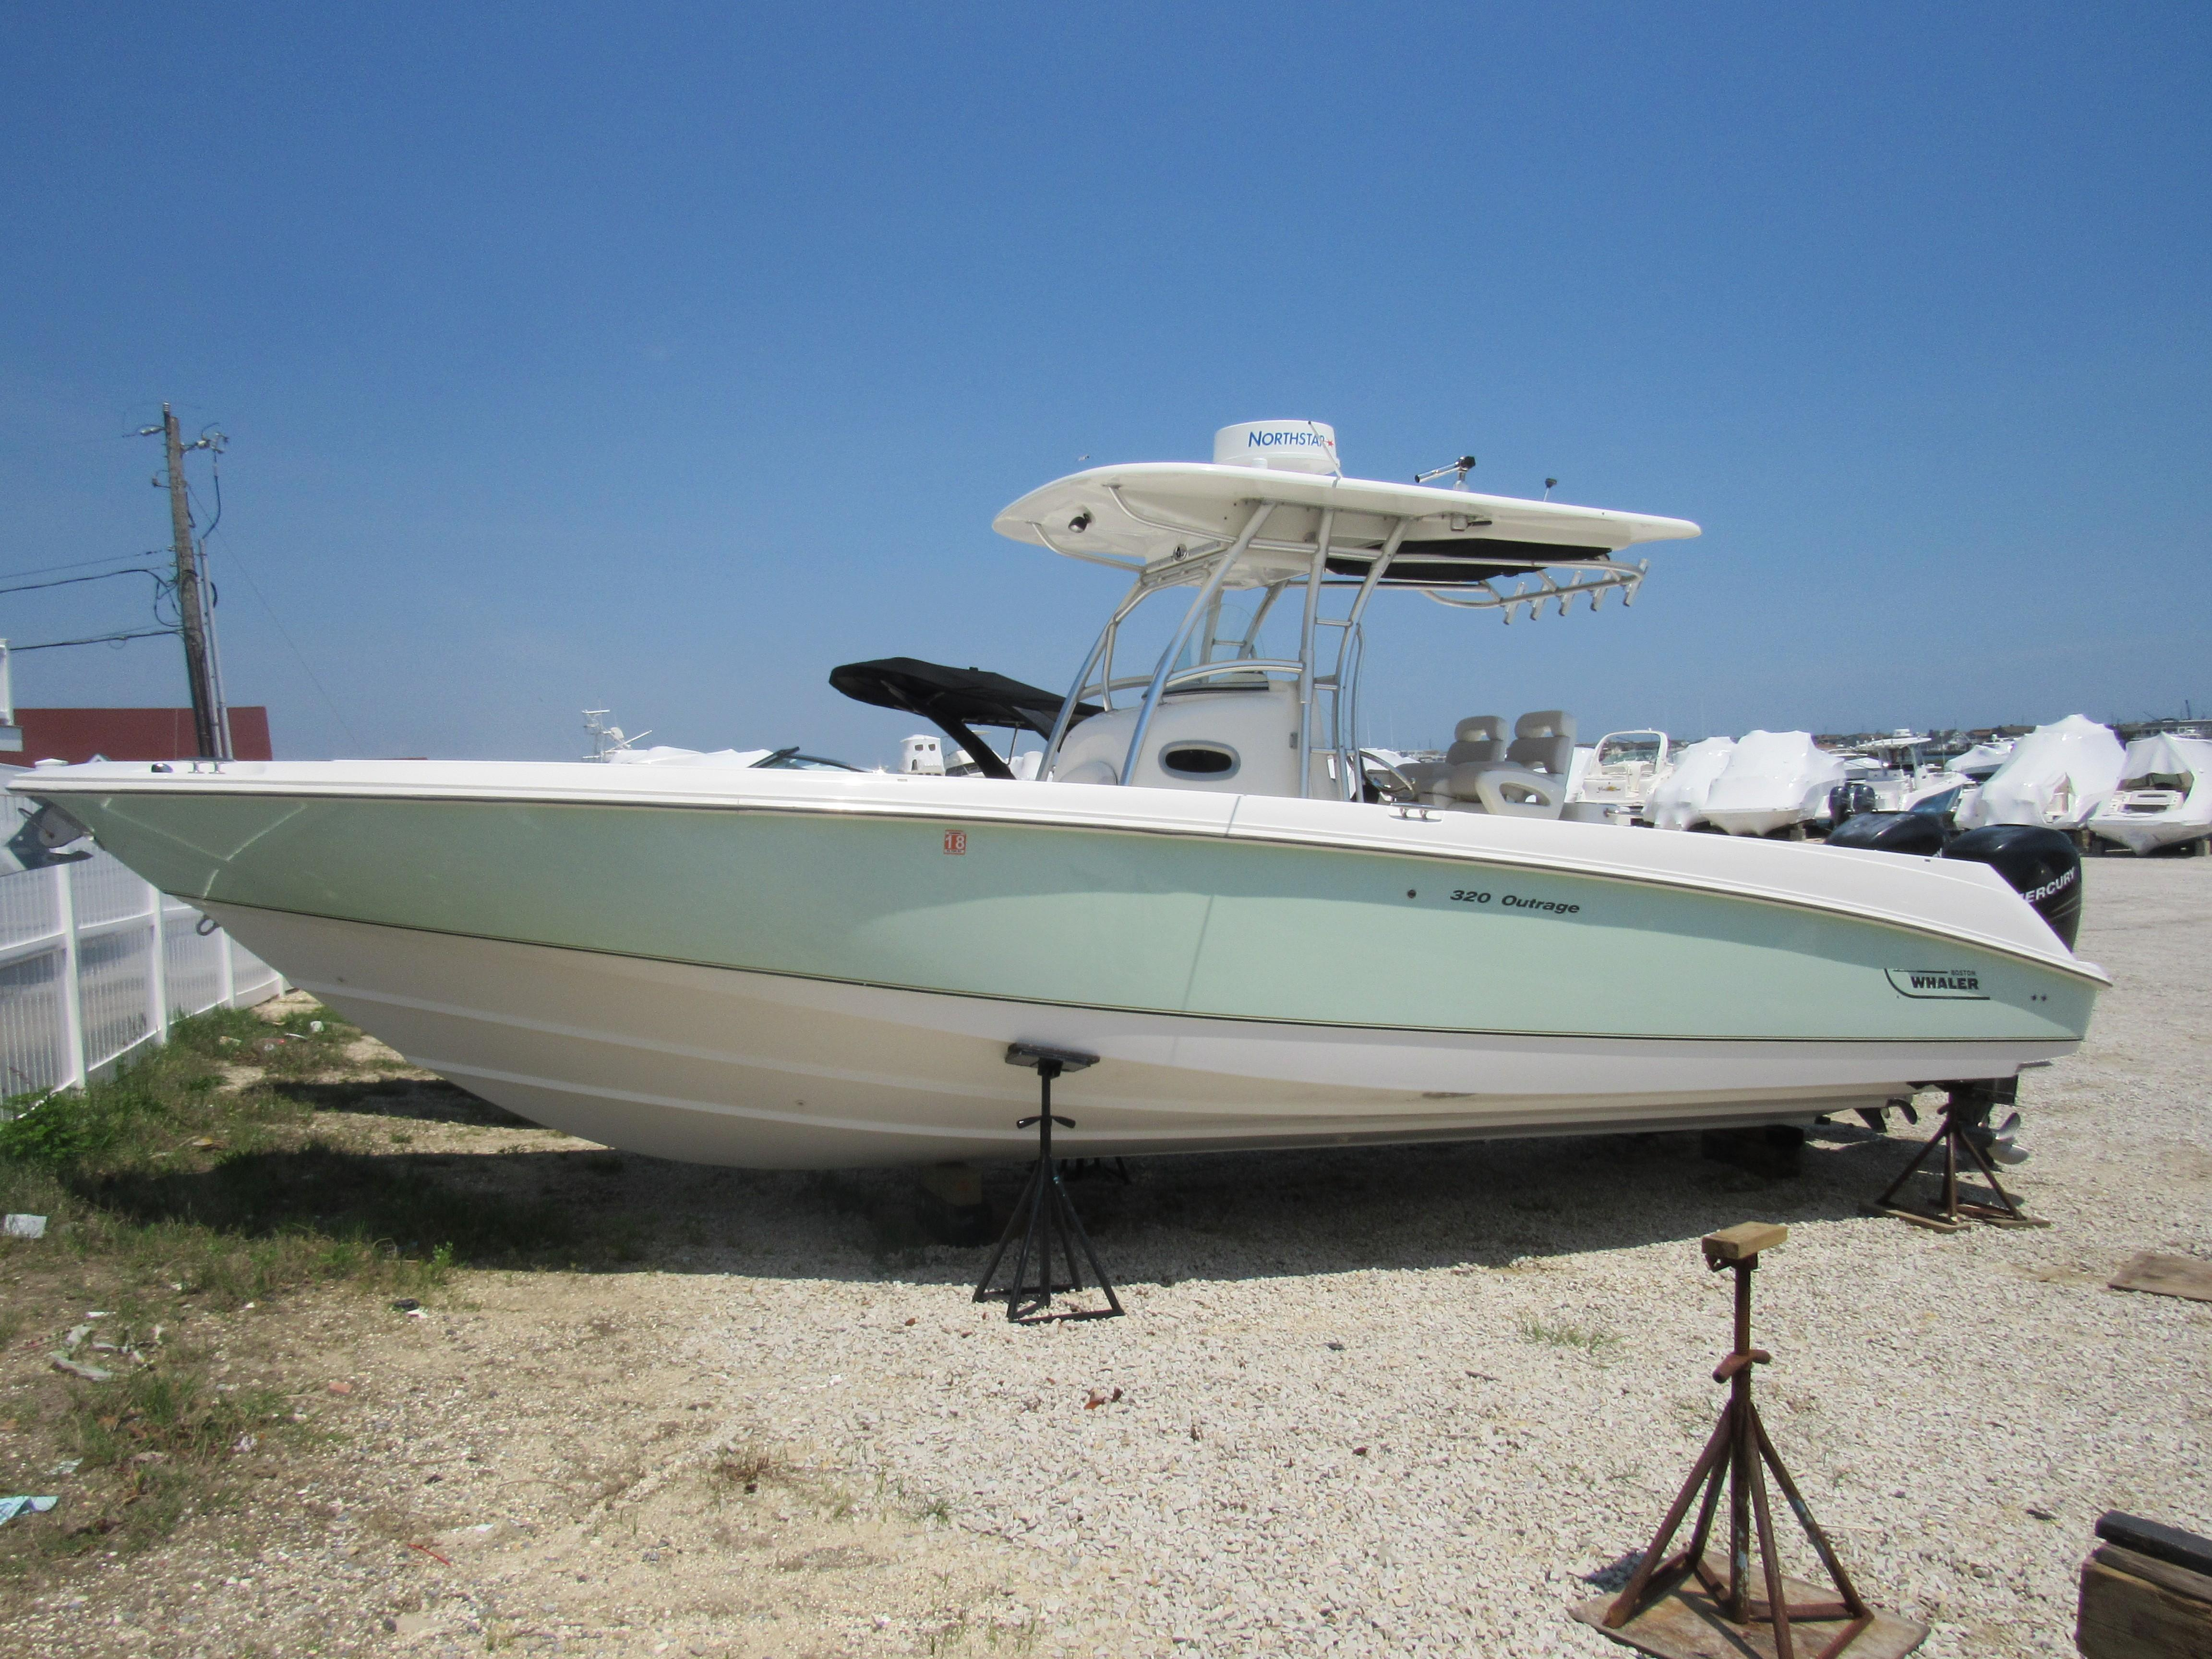 Boston Whaler Power Boats For Sale - Stone Harbor Marina in